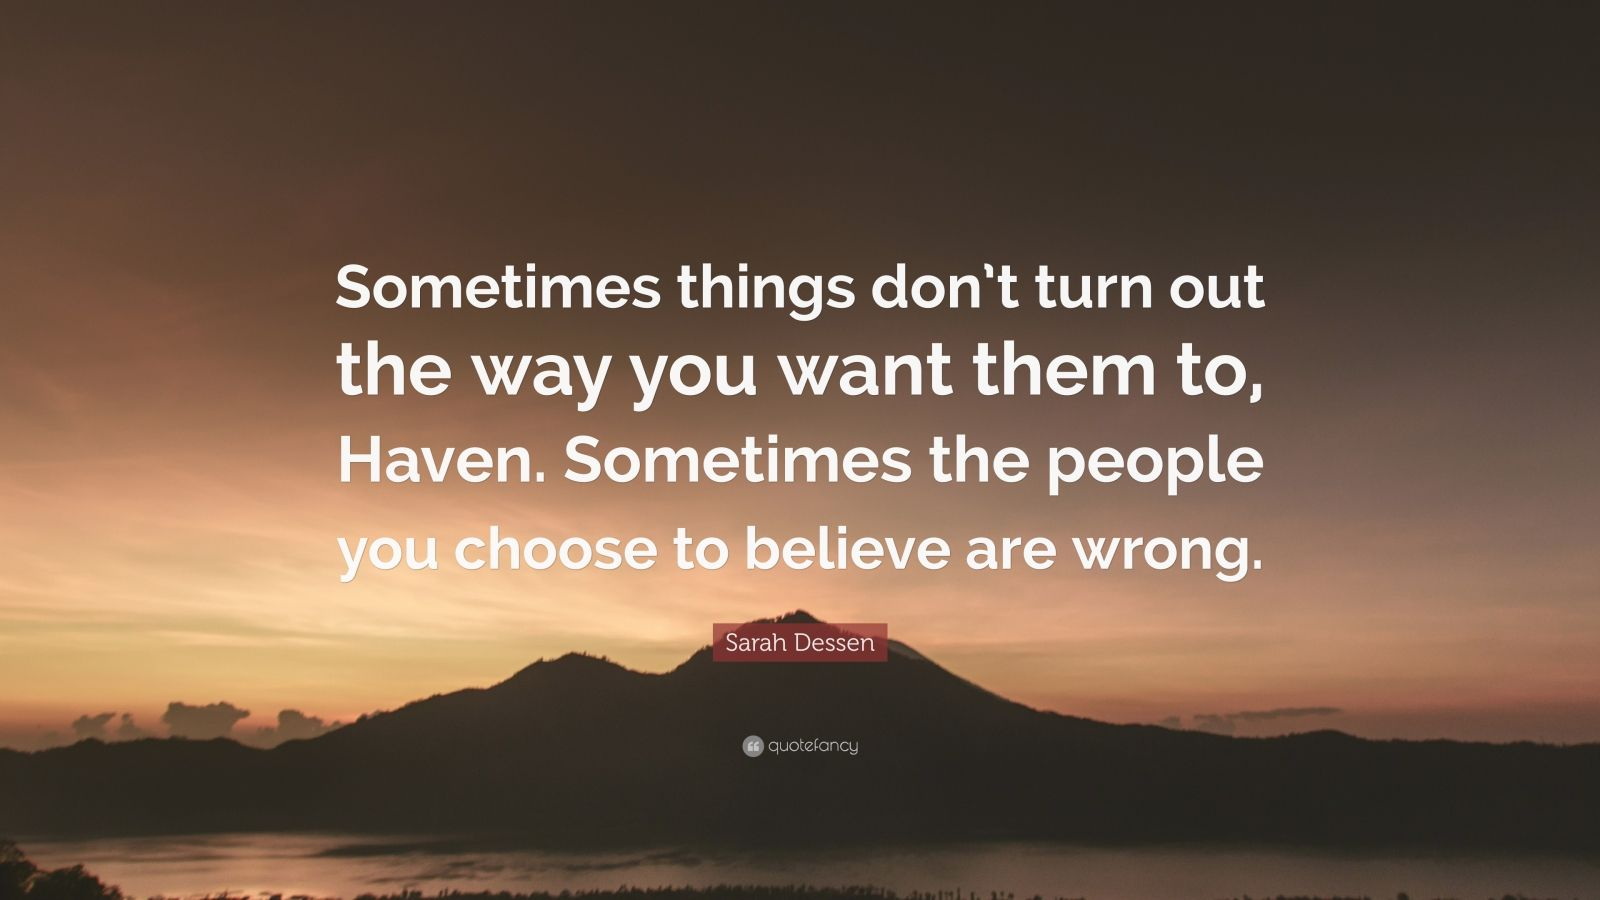 """Sarah Dessen Quote: """"Sometimes things don't turn out the way you want them to, Haven. Sometimes the people you choose to believe are wrong."""""""